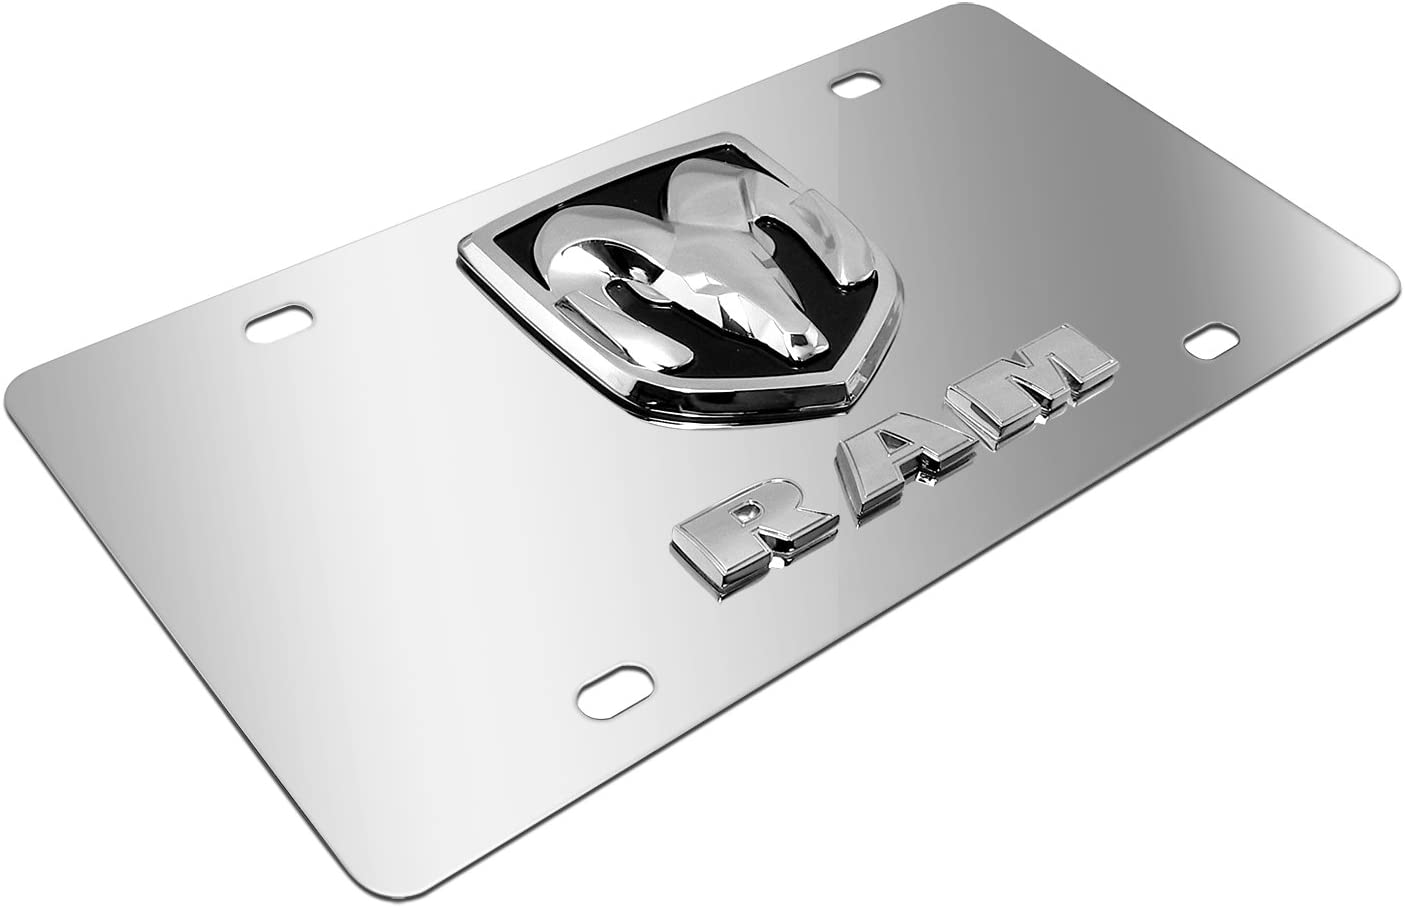 Metal 3D License Plate Tag for Dodge Silver 99 Carpro Stainless Steel License Plate tag for Dodge RAM Vehicle Silver Front License Plate Covers with Chrome 3D Logo and Name for Dodge RAM